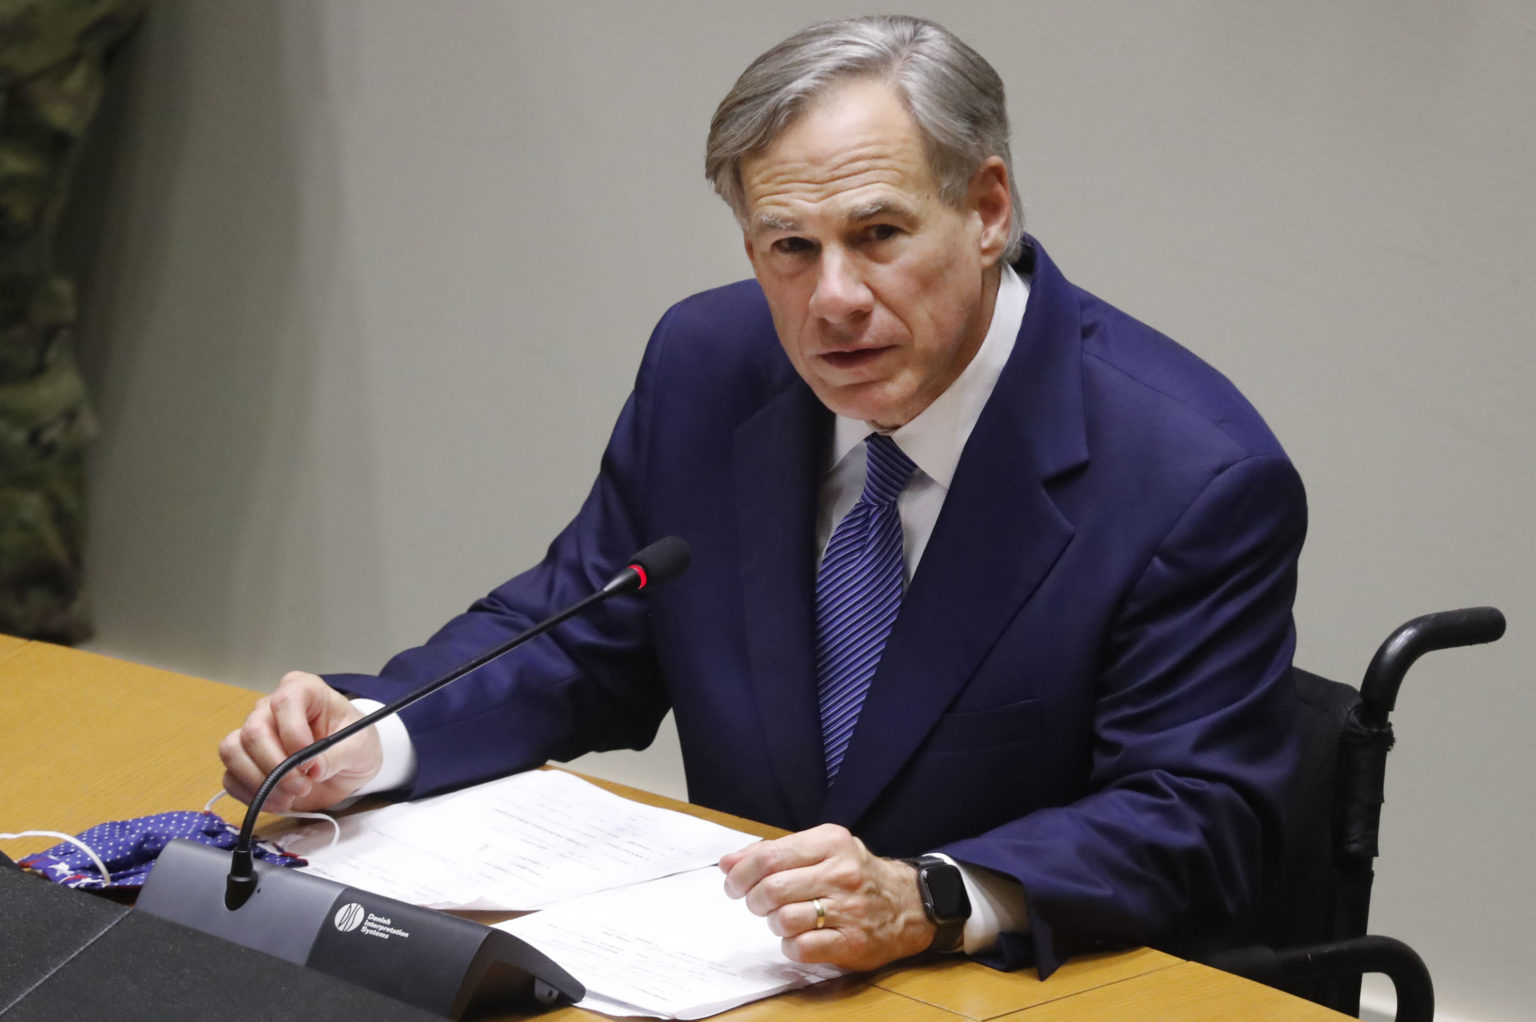 Governor Greg Abbott speaks at a news conference at Dallas City Hall in June.